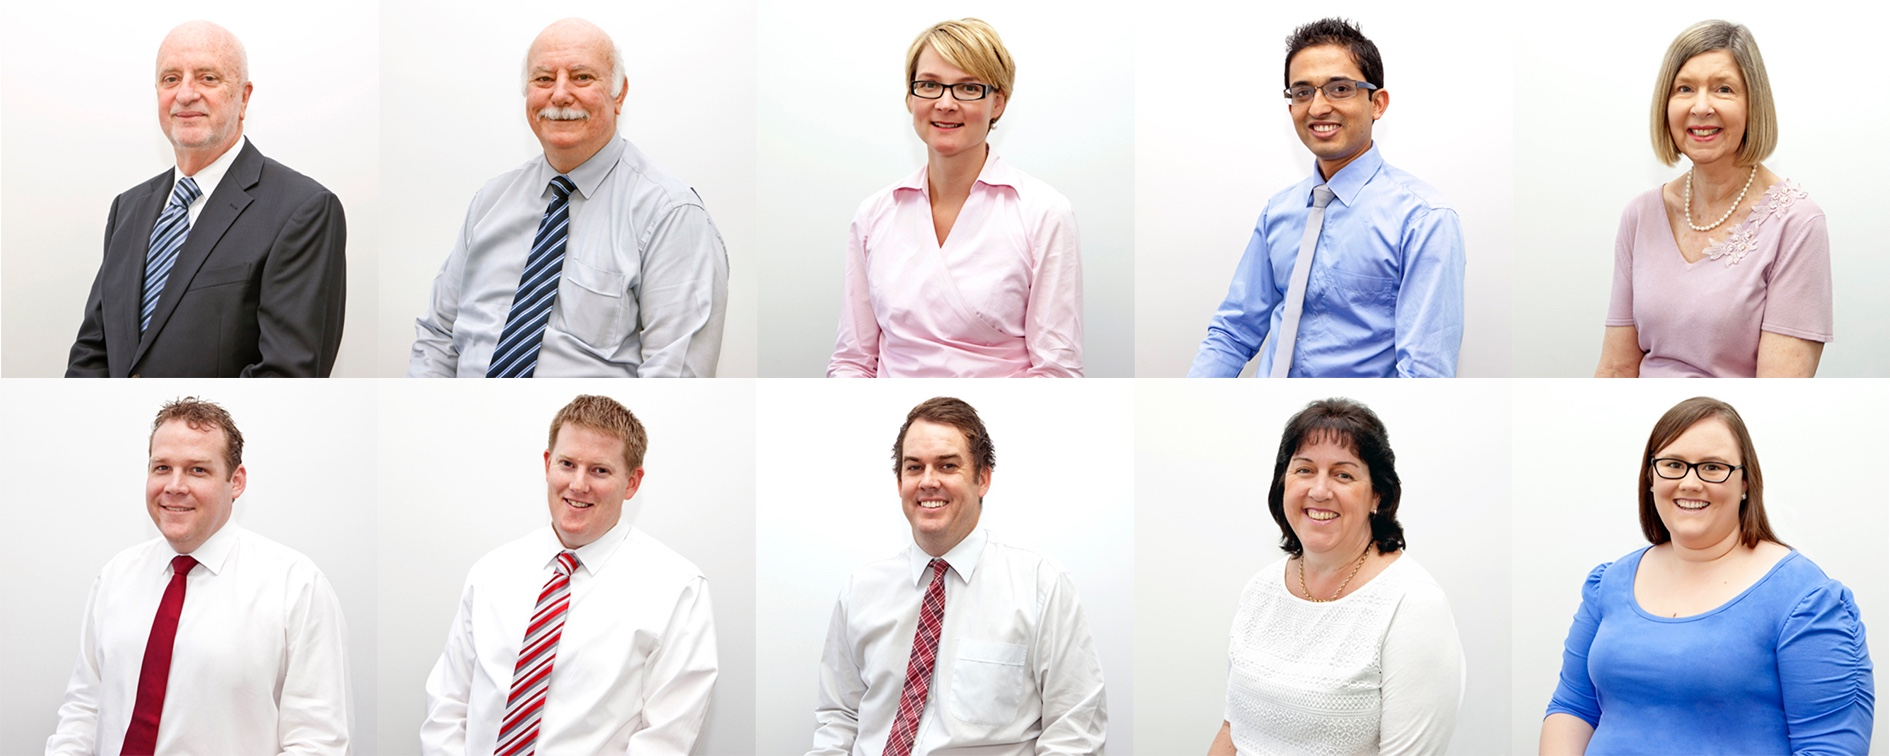 Headshots of the Charts Partners team